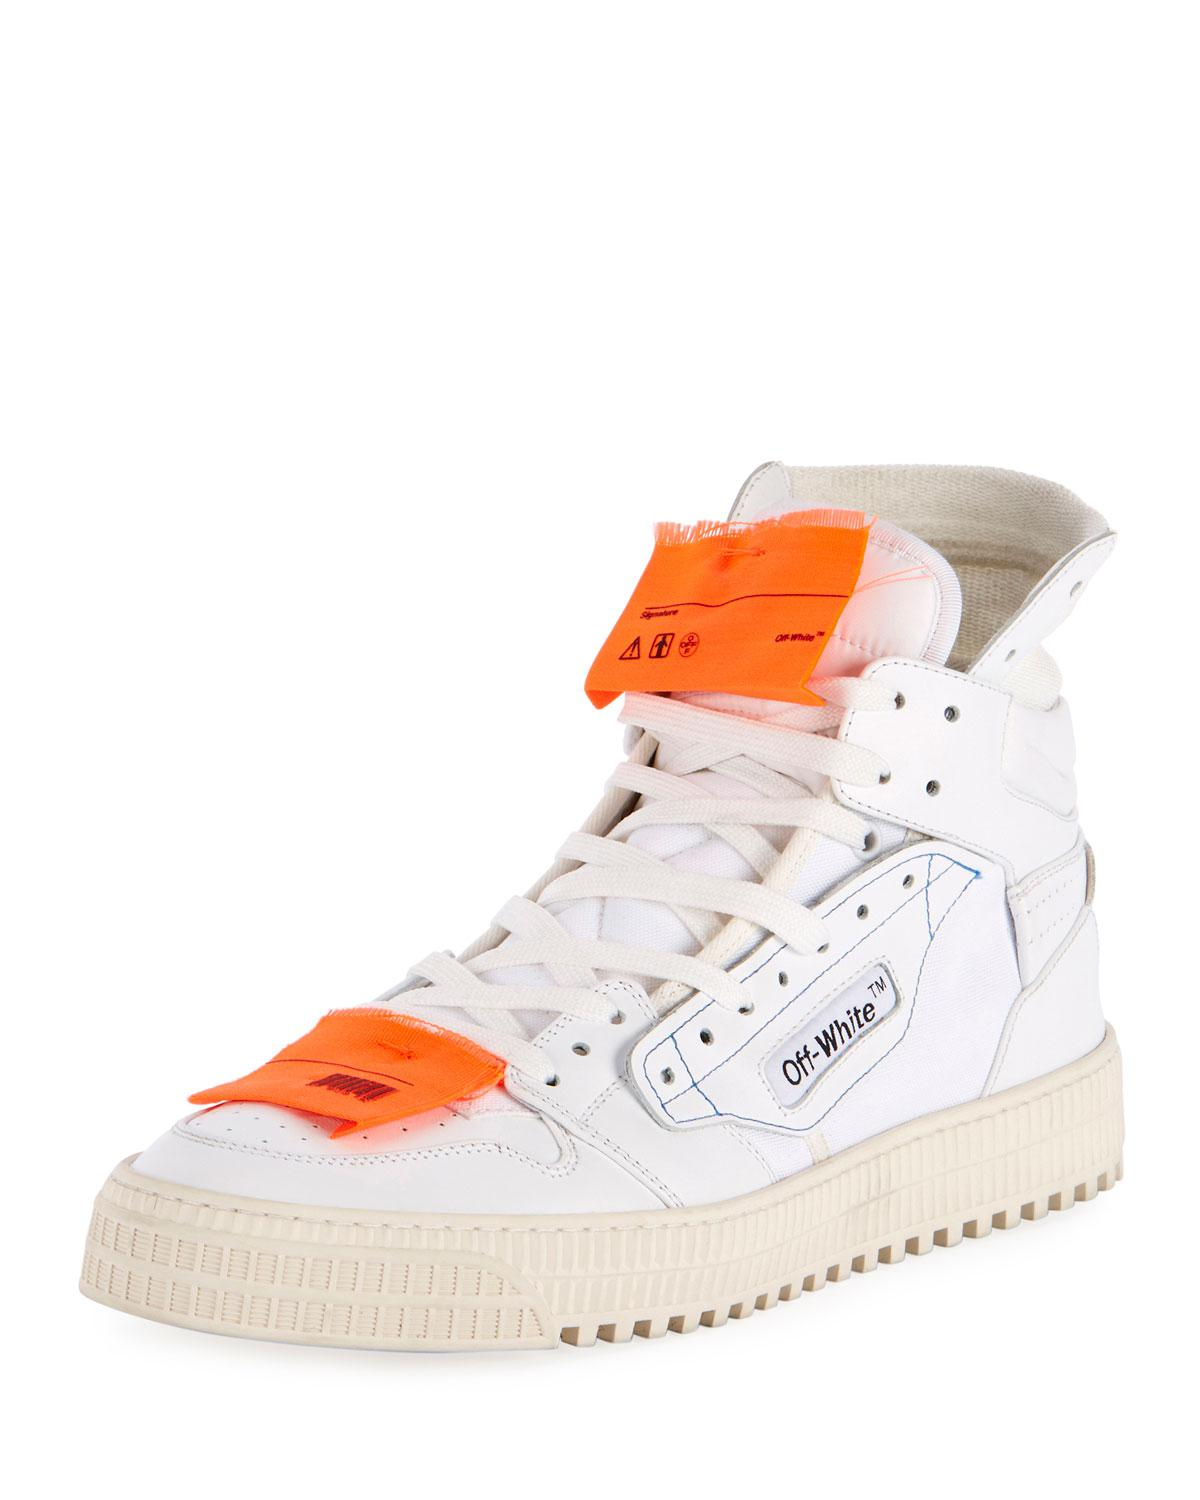 OFF-WHITE 20MM LOW 3.0 LEATHER & CANVAS SNEAKERS Great Deals Cheap Price Clearance Visit New Fashionable Cheap Online Footlocker Sale Online Discount Collections ljCTTcvKvC